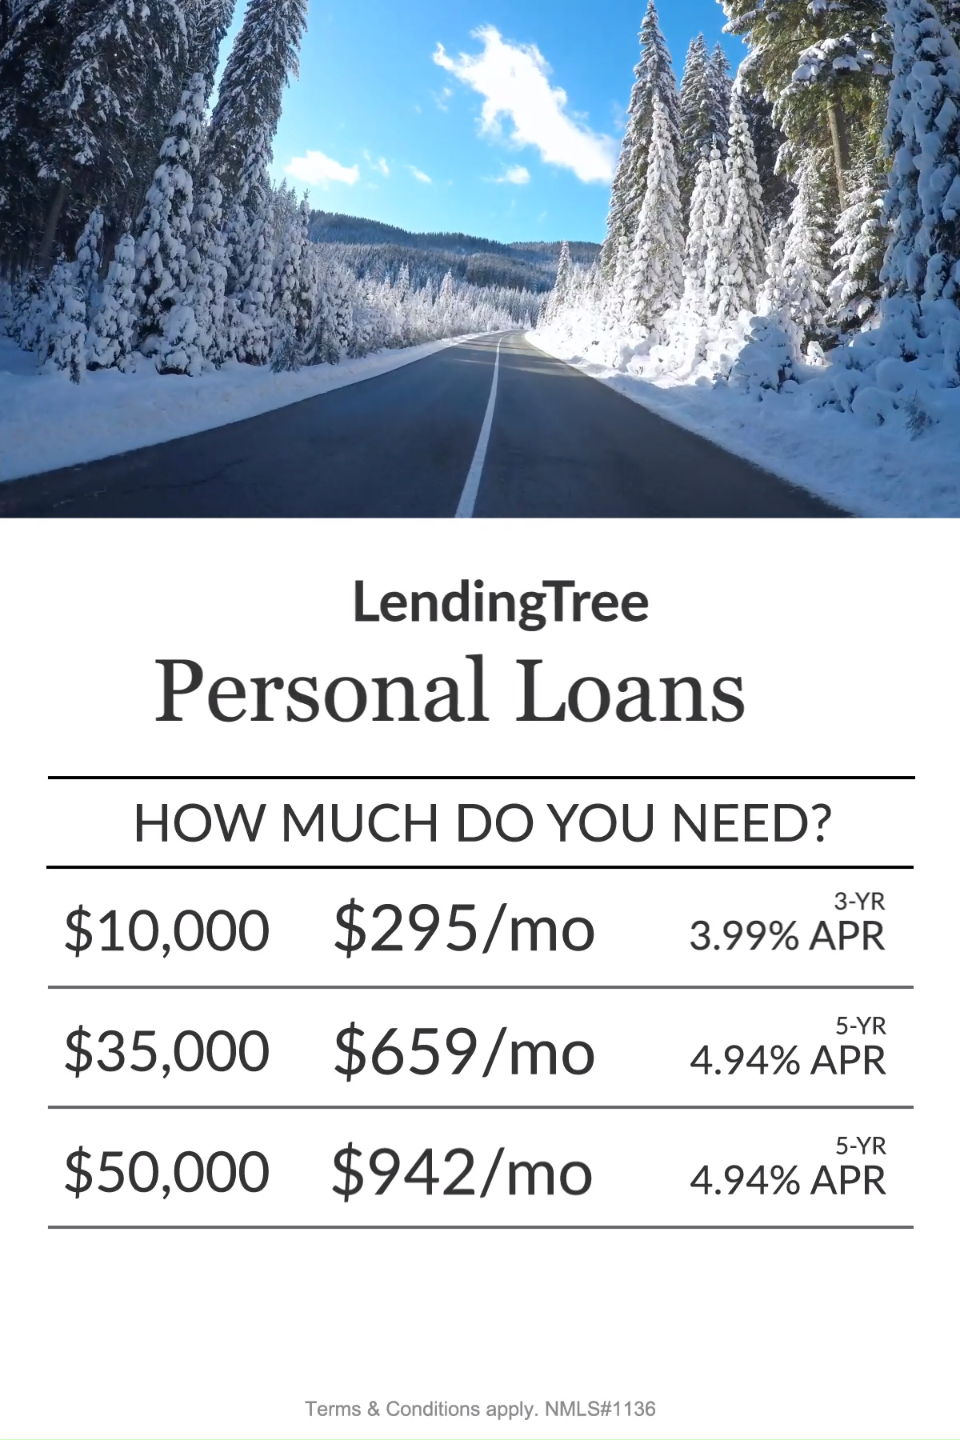 Pay off credit cards, consolidate debt and build credit faster! Personal Loan rates as low as 3.99% APR.